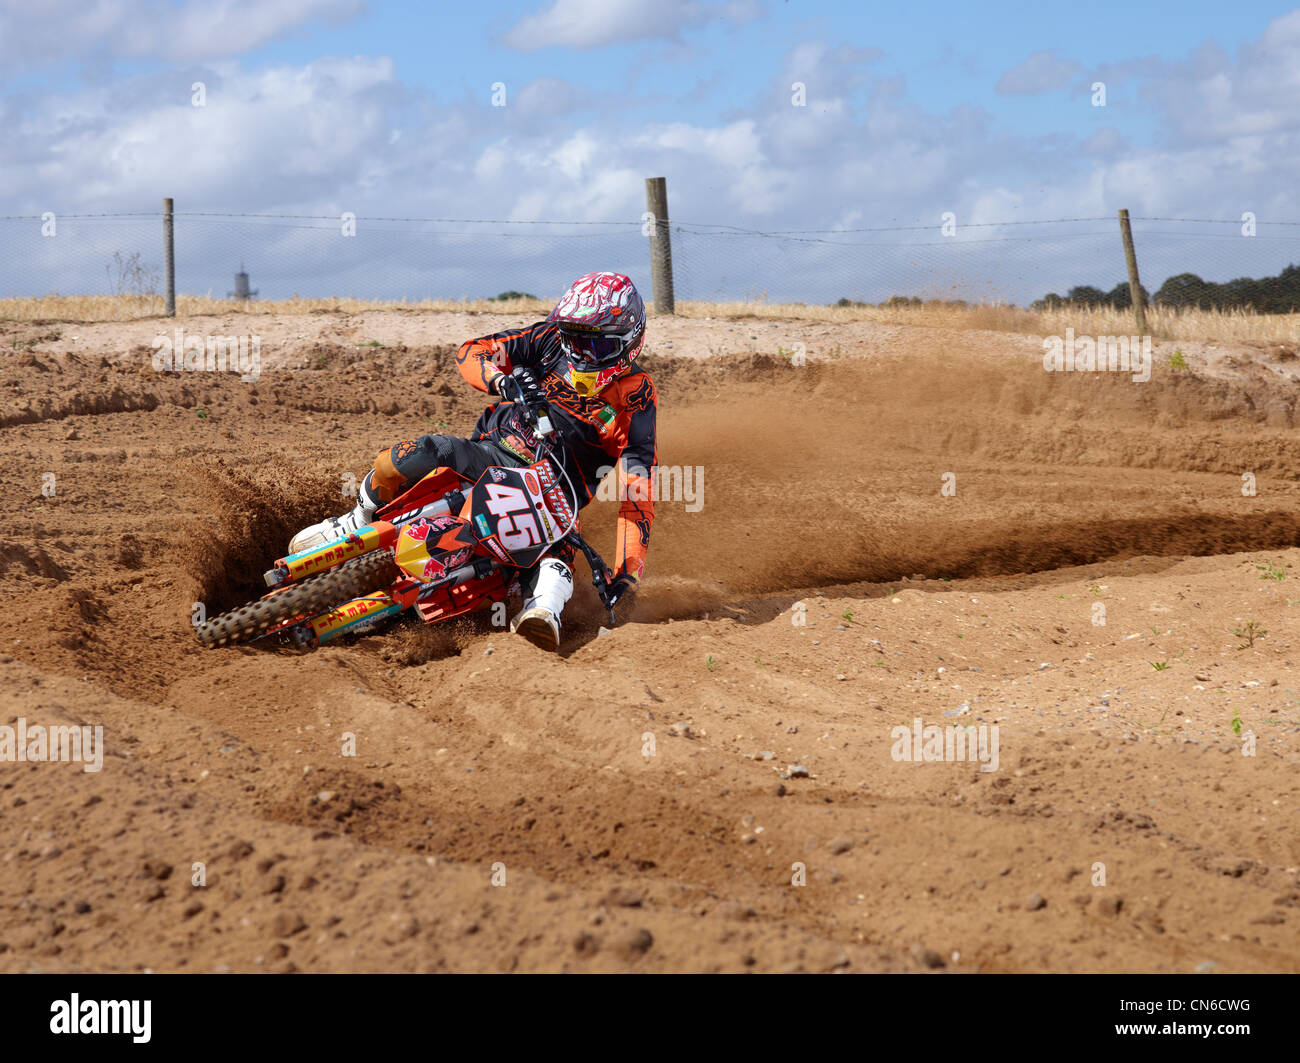 motorcross bike racing around dirt corner, speeding winning - Stock Image